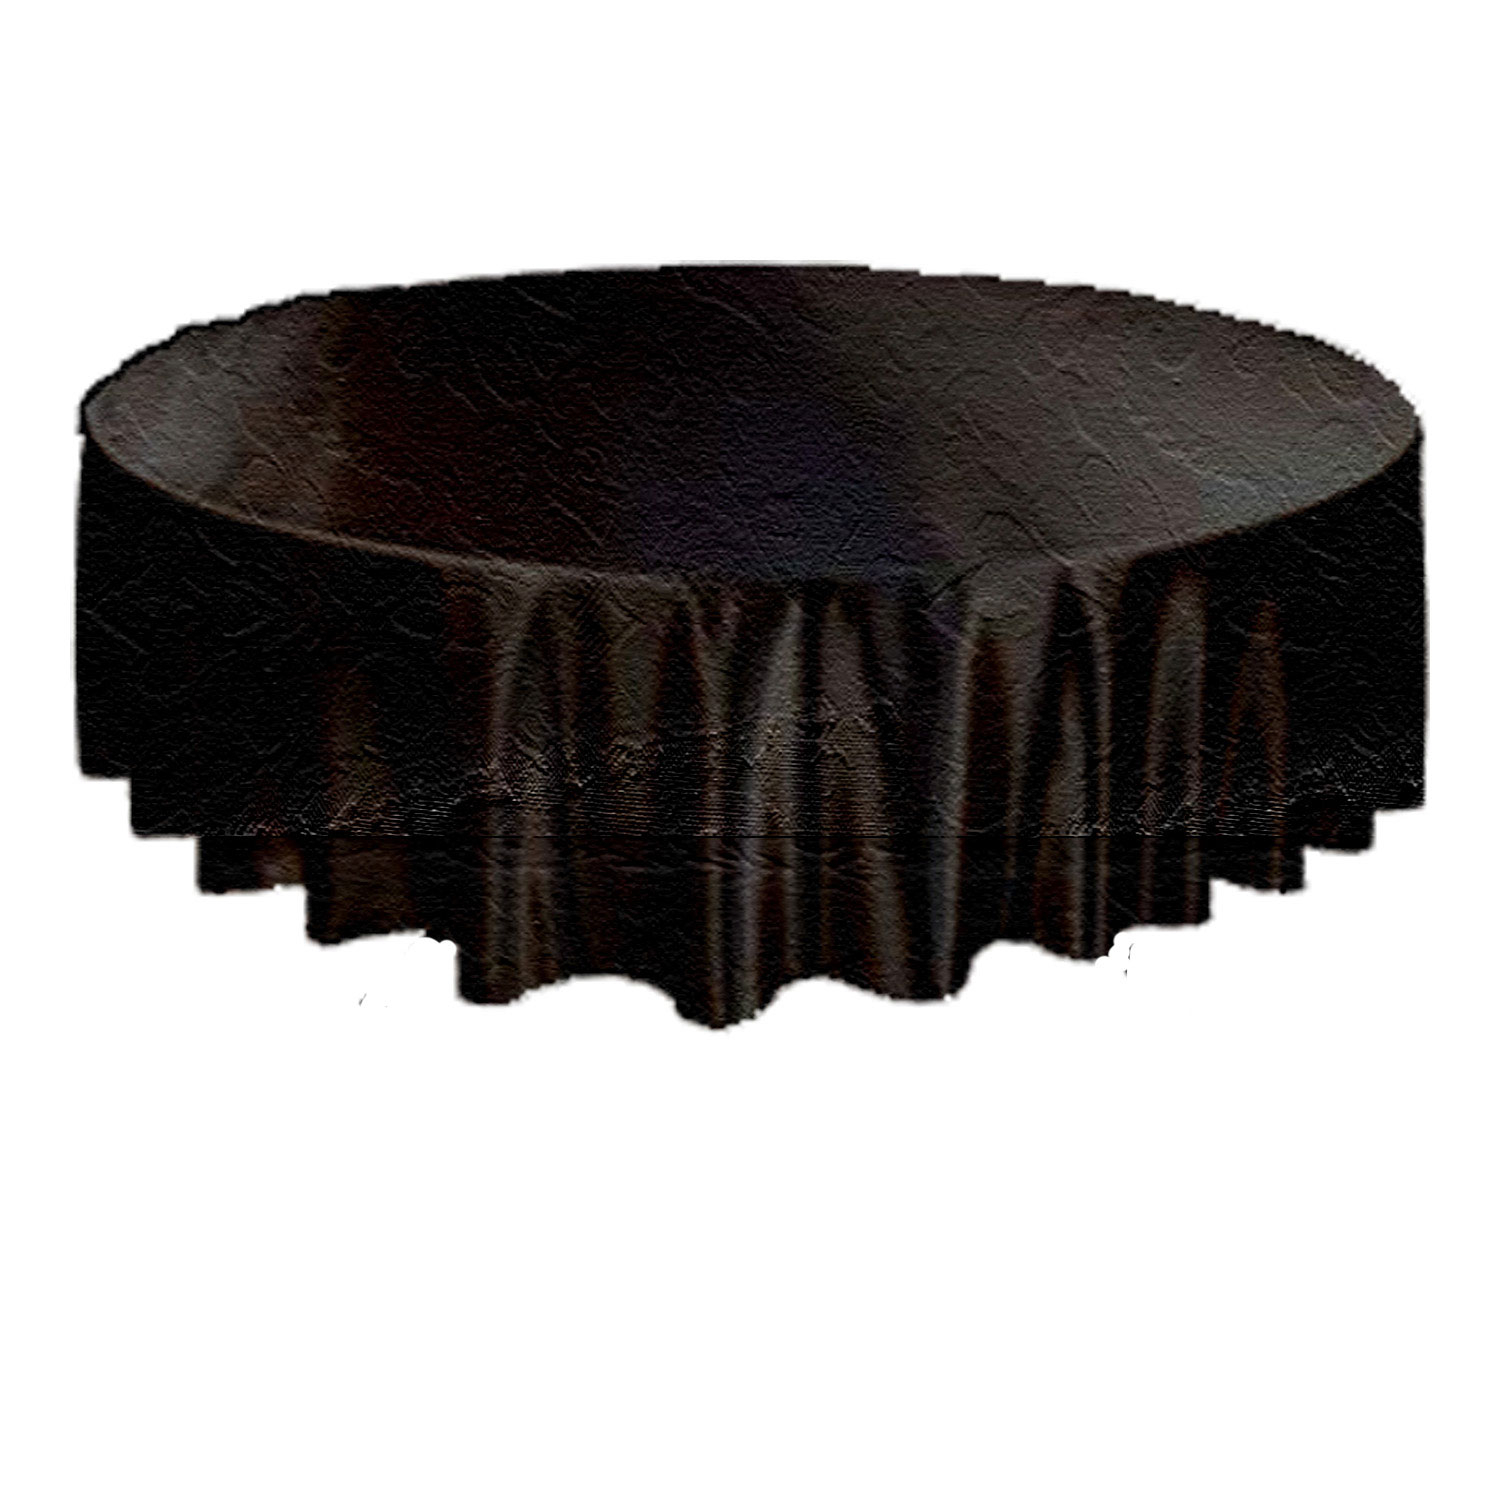 gothic decor black table runner swag scarf halloween decorations